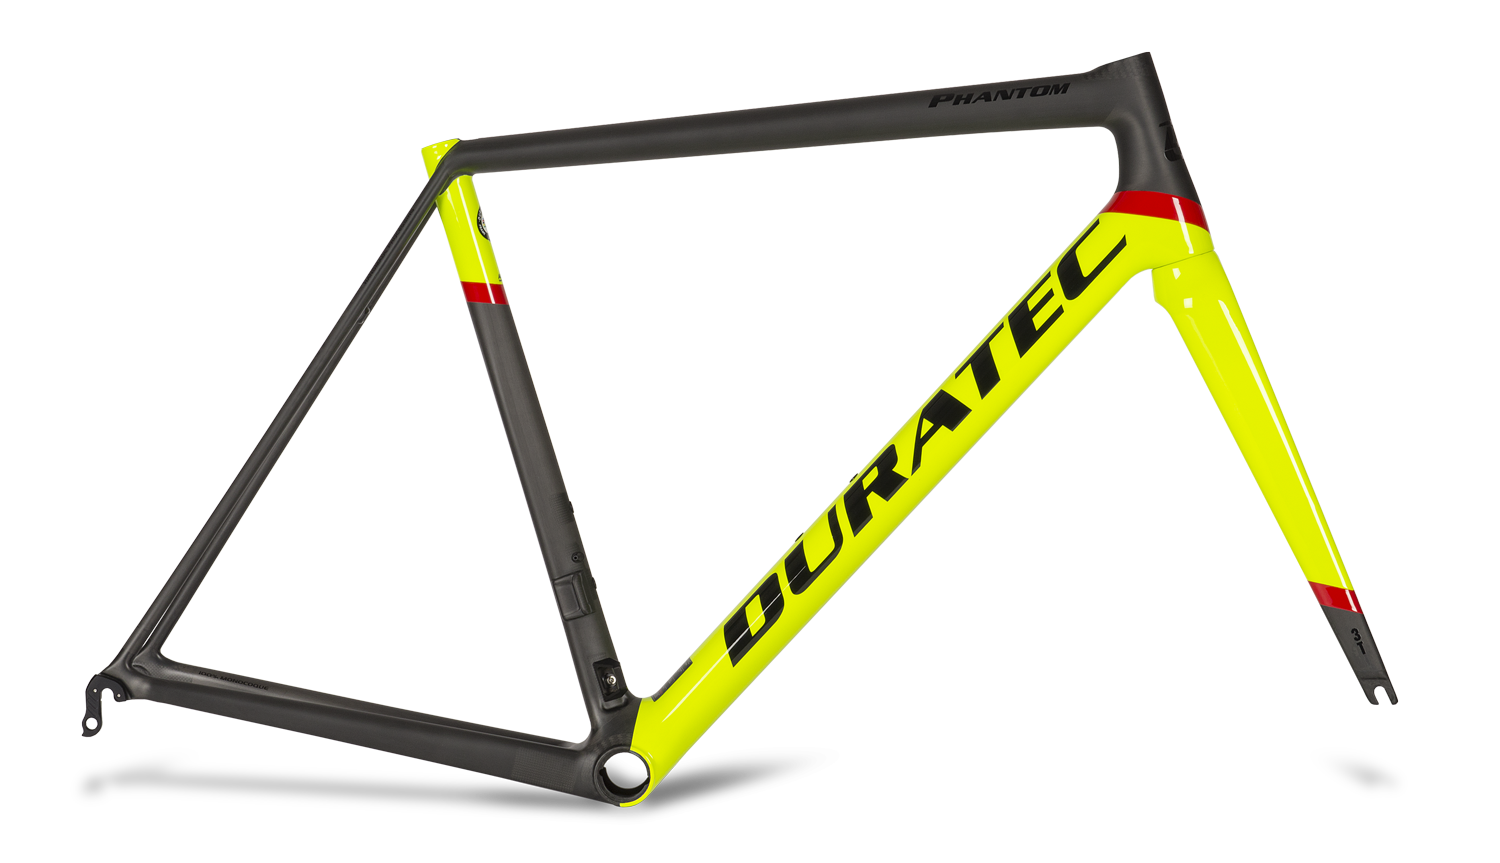 frame Phantom and fork 3T Rigida